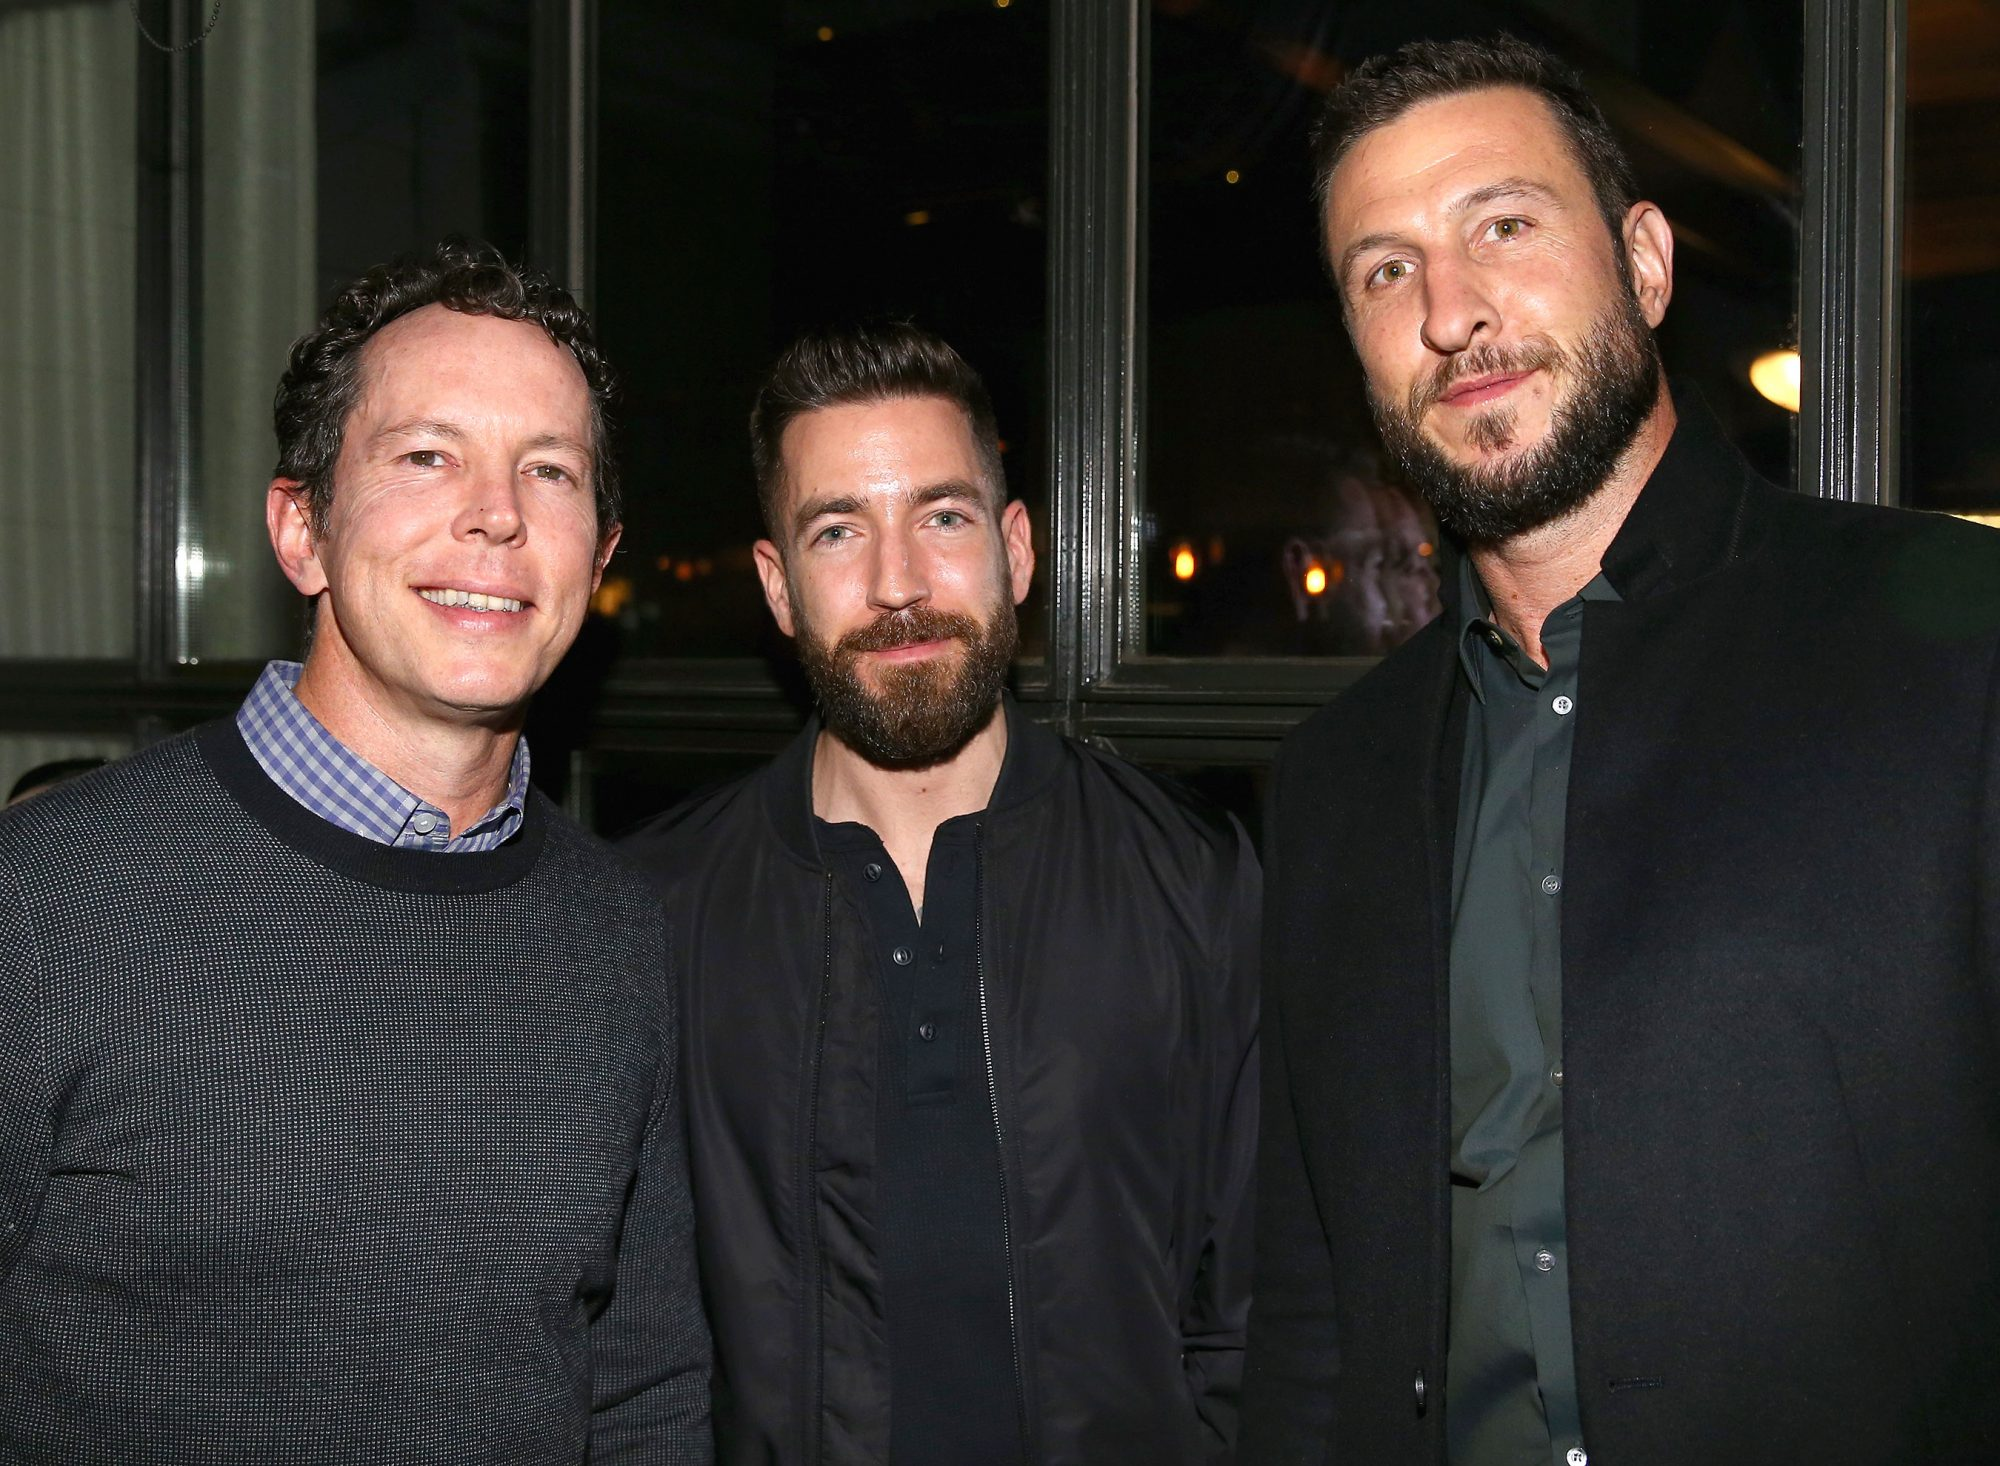 The Gifted showrunner Matt Nix (left) and American Gods star Pablo Schreiber (right) at the SCAD aTVfest and Entertainment Weekly party at Lure